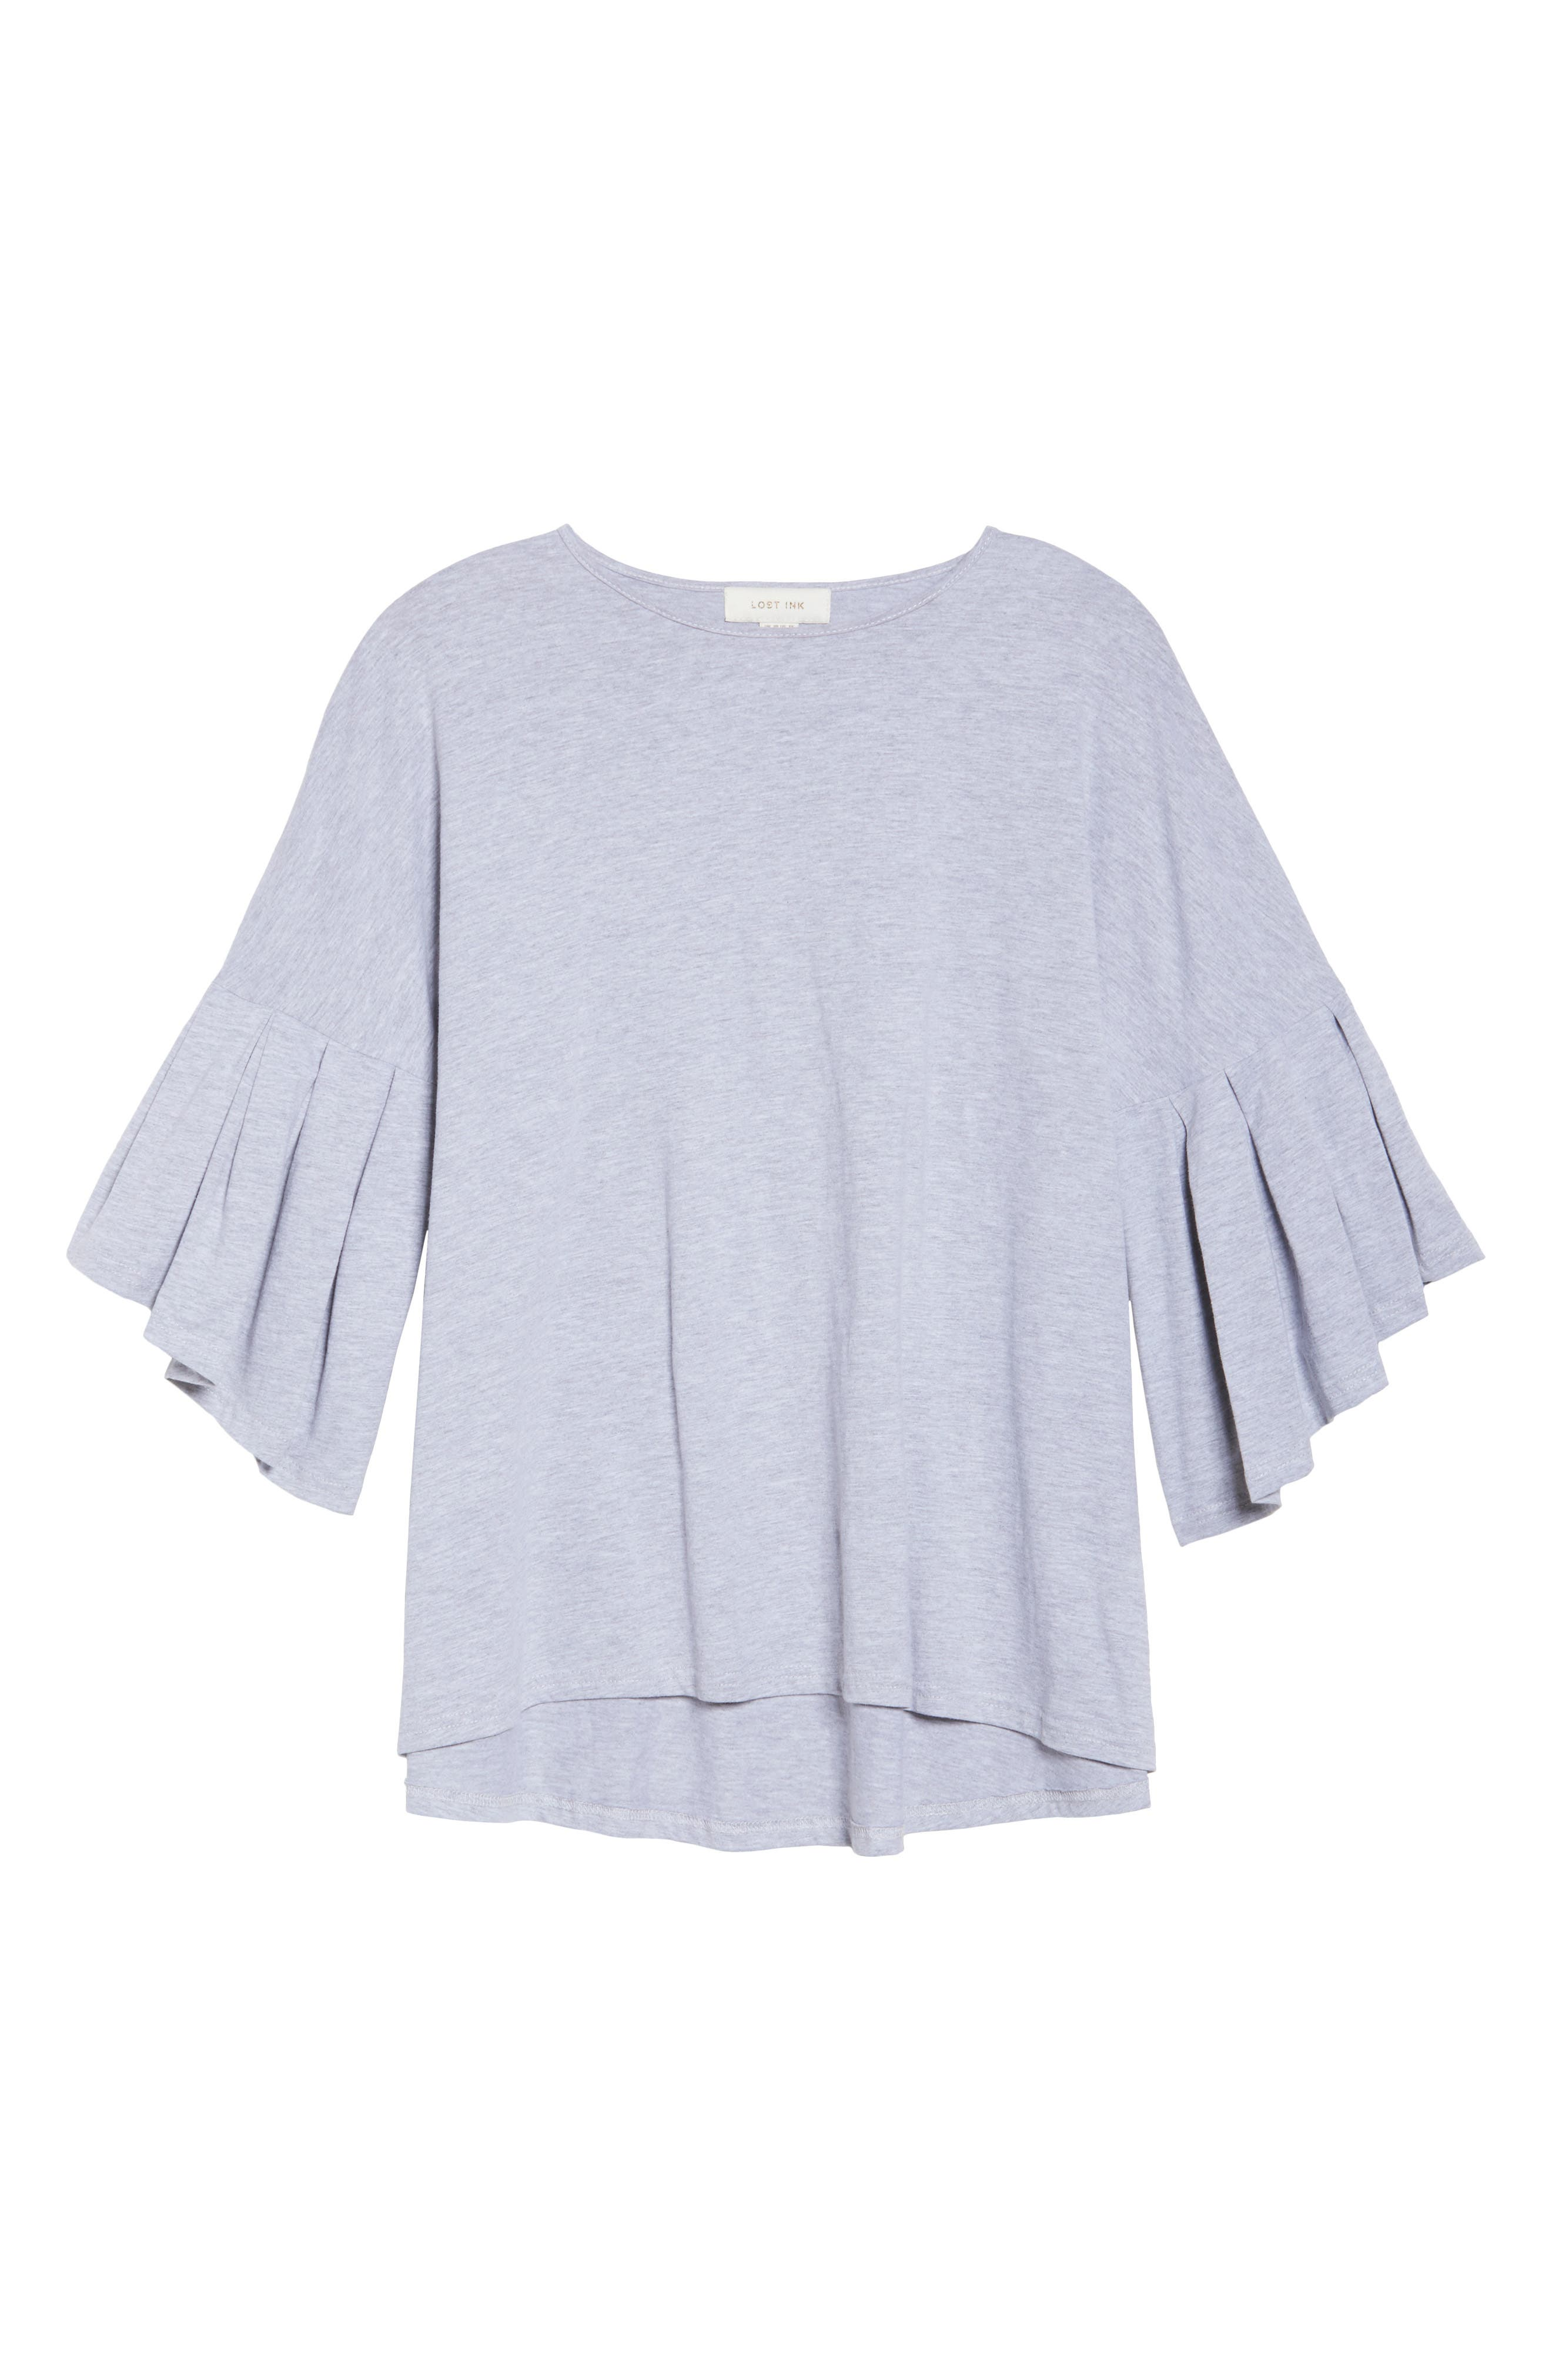 Bell Sleeve Cotton Blouse,                             Alternate thumbnail 6, color,                             021